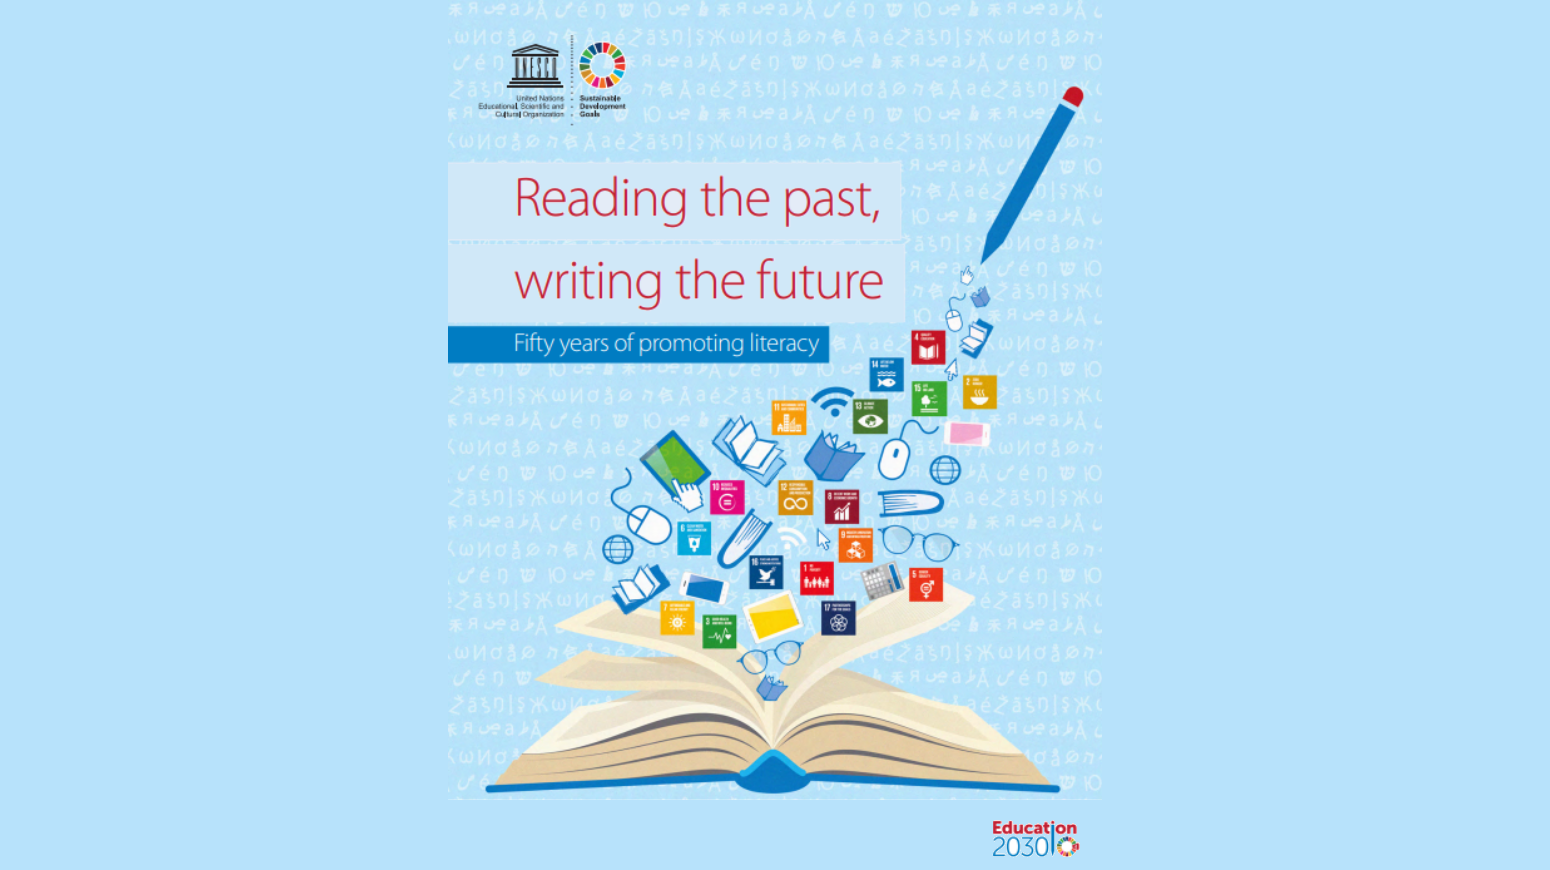 Reading the past, writing the future - Fifty years of promoting literacy